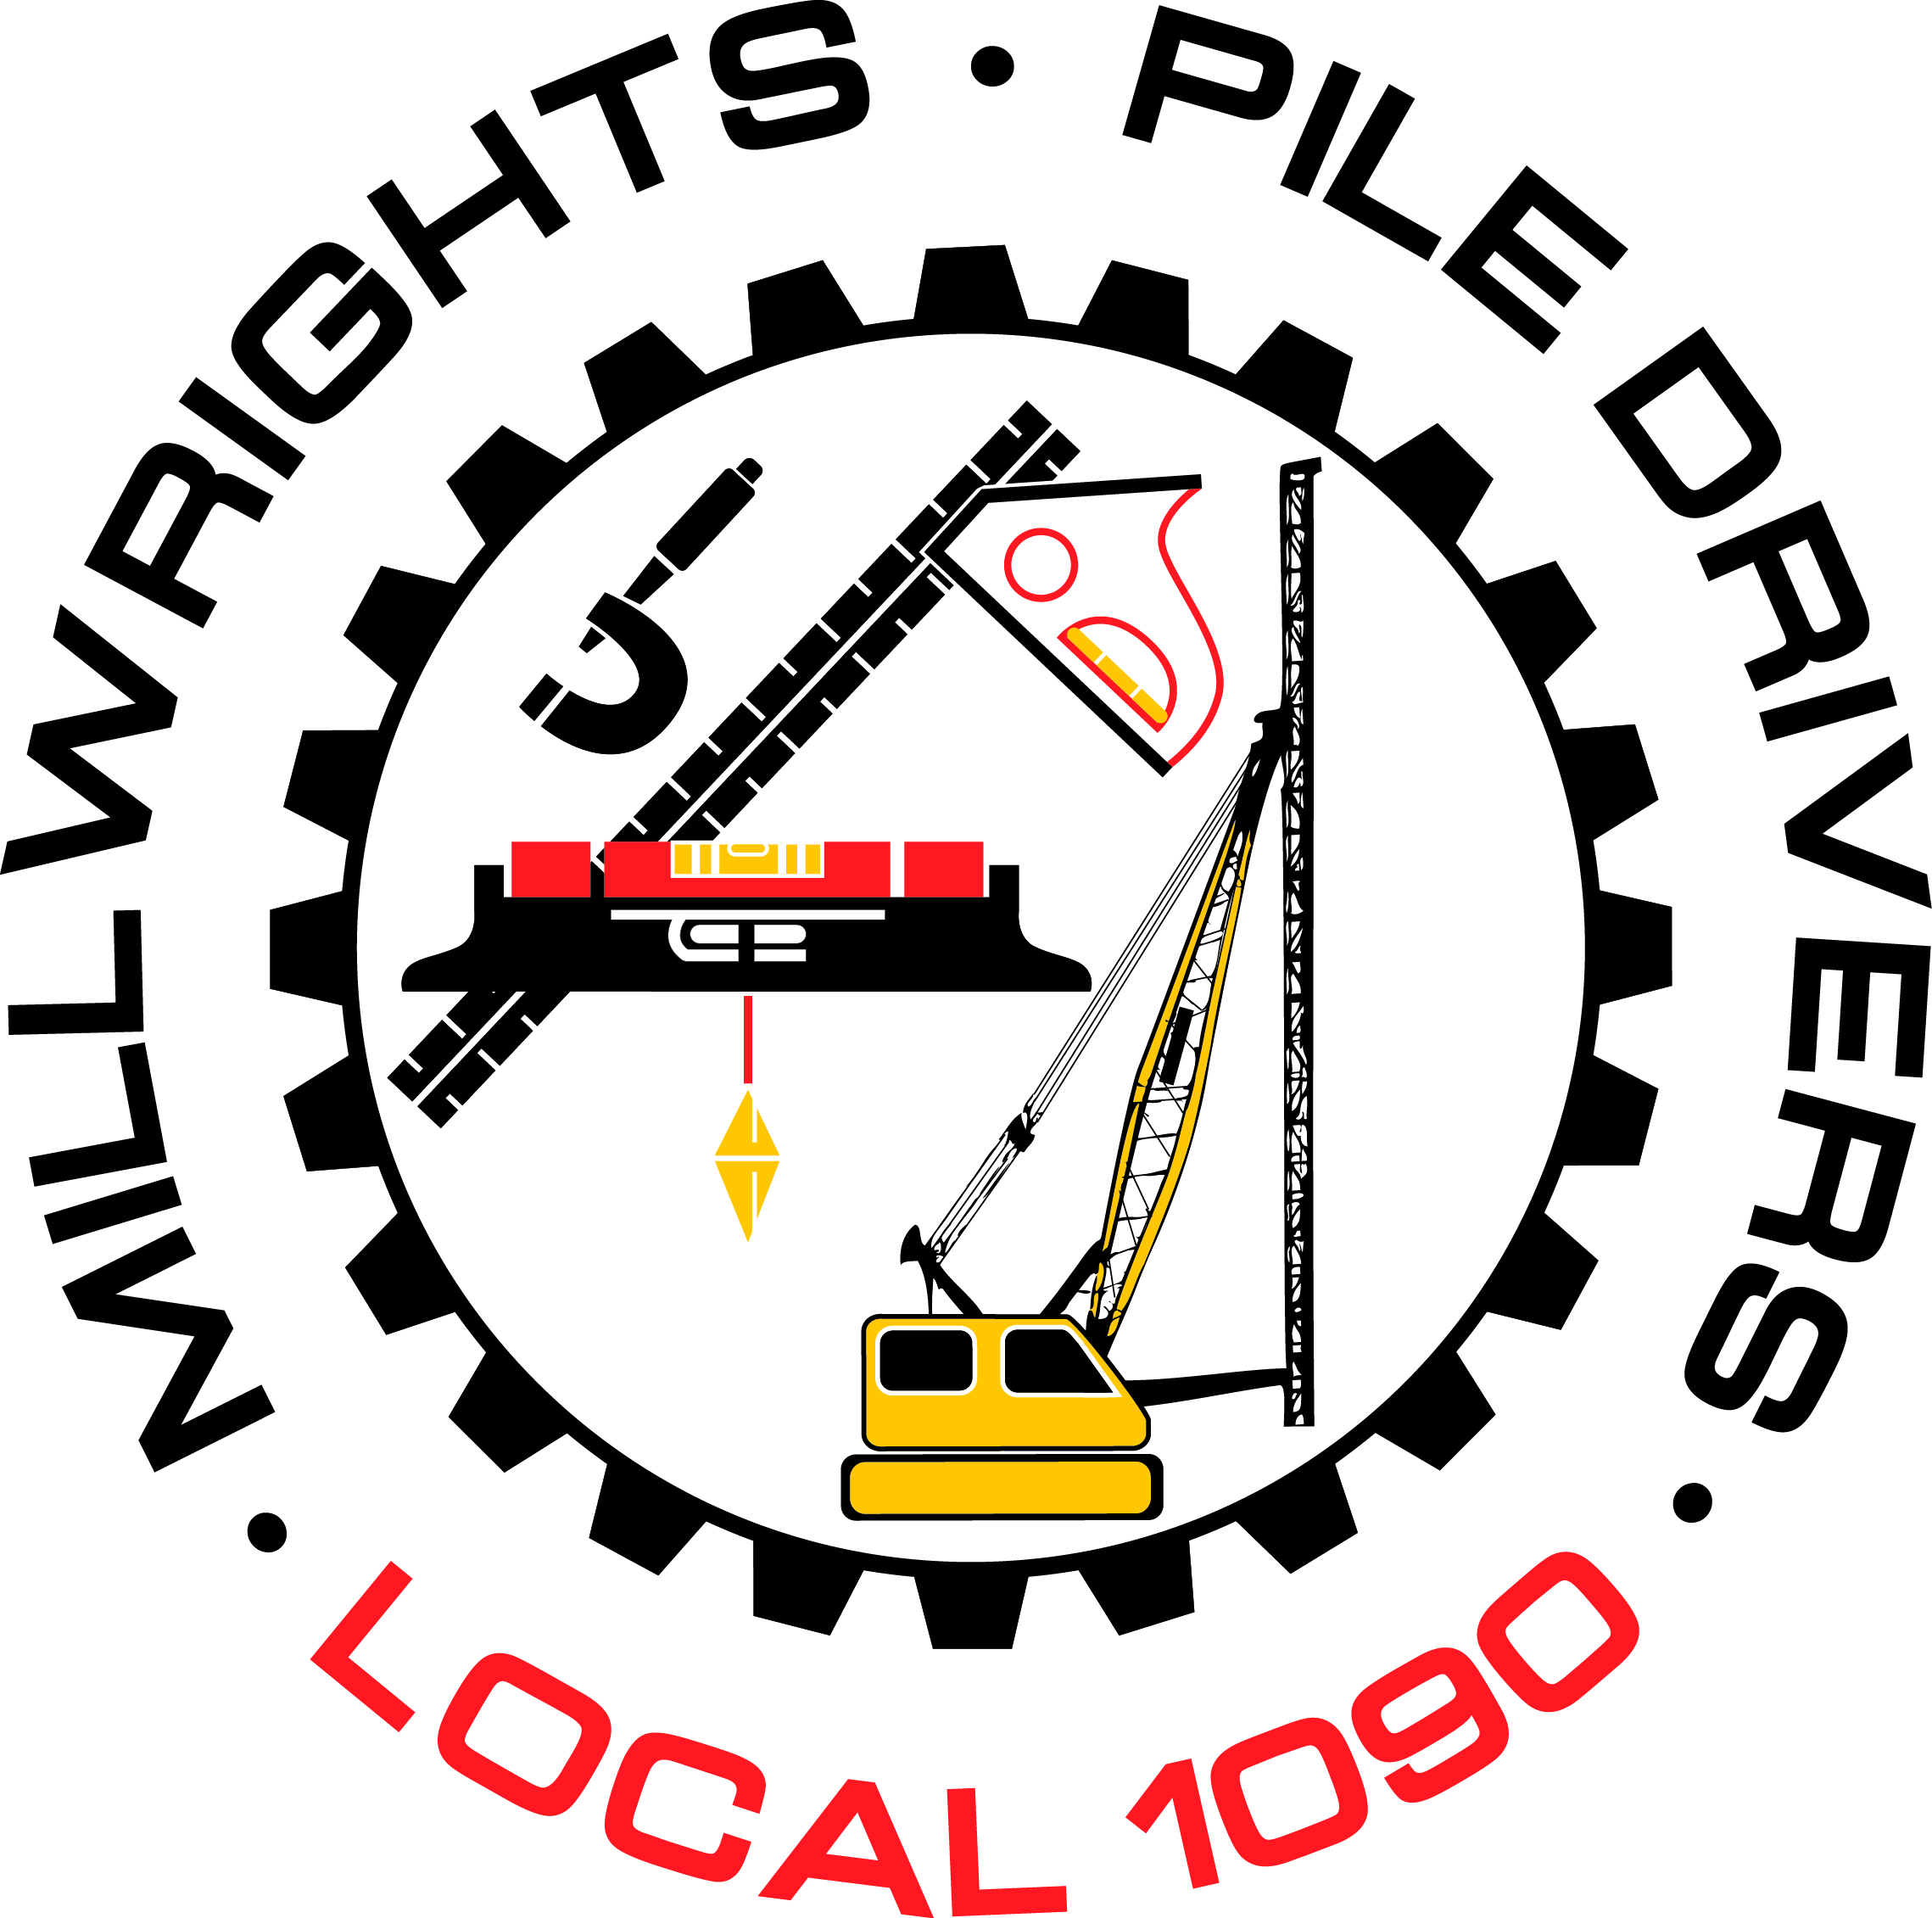 Image of Millwrigths LOCAL 1090 Seal